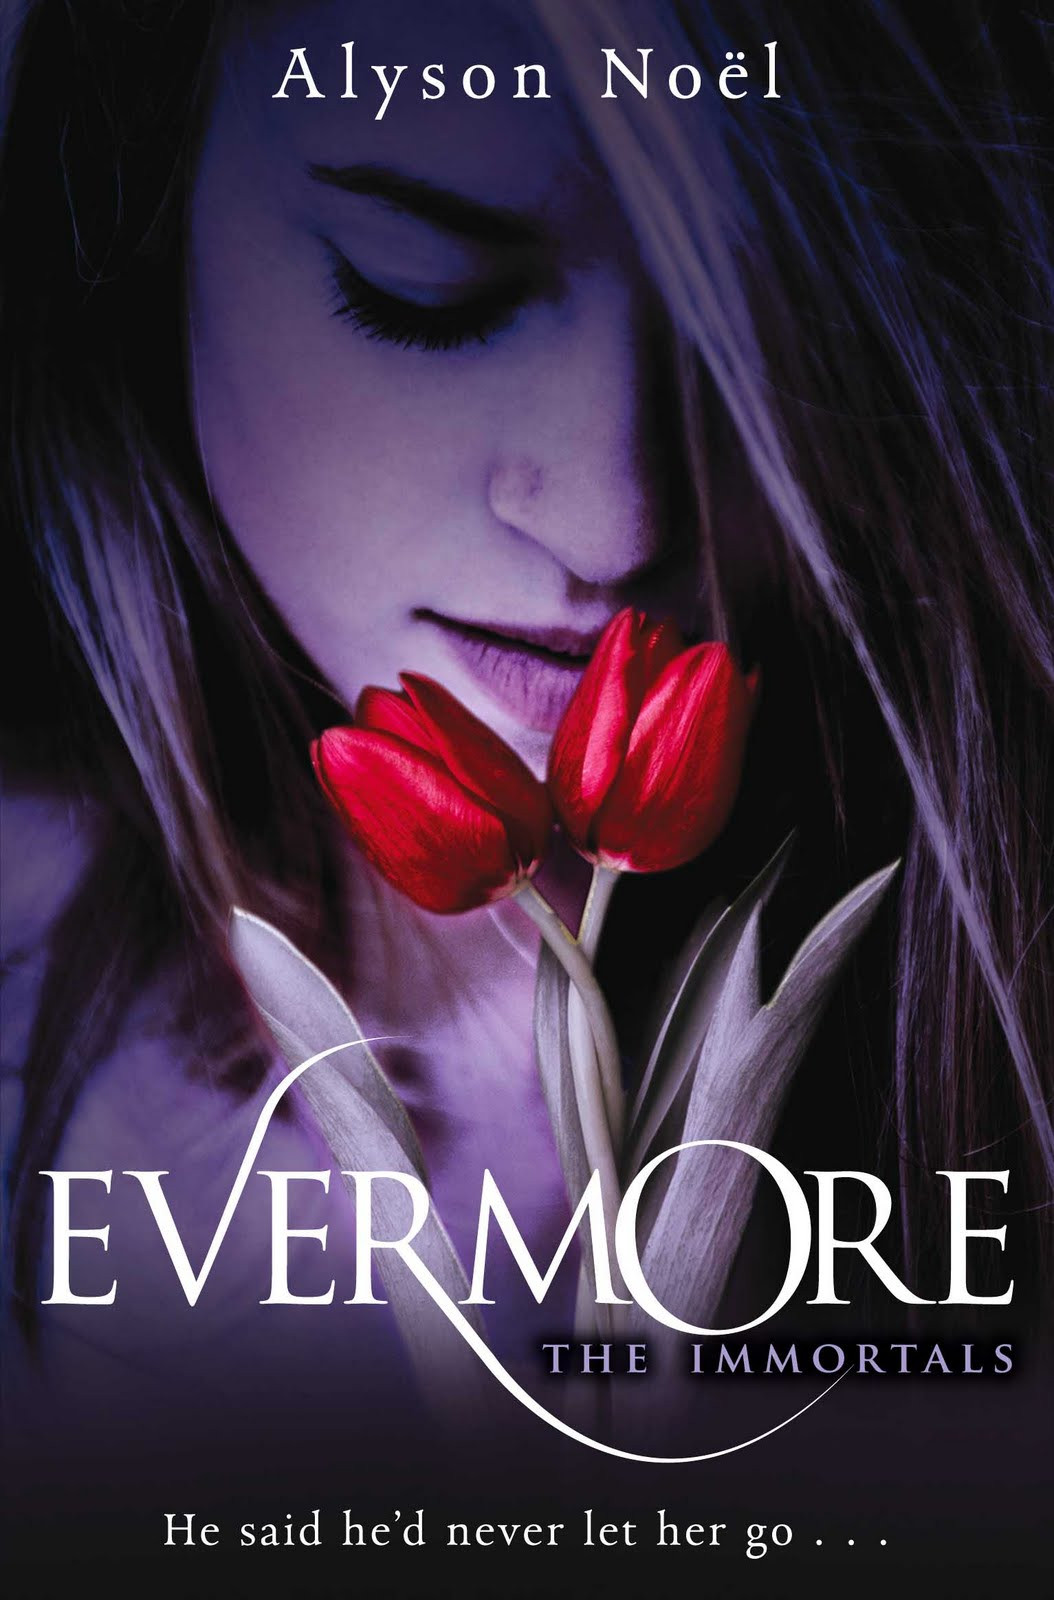 Inspirational Writing From the Tub Blog tour Alyson Noel Everlasting Red Heart Evermore Of New 22 Ideas Red Heart Evermore